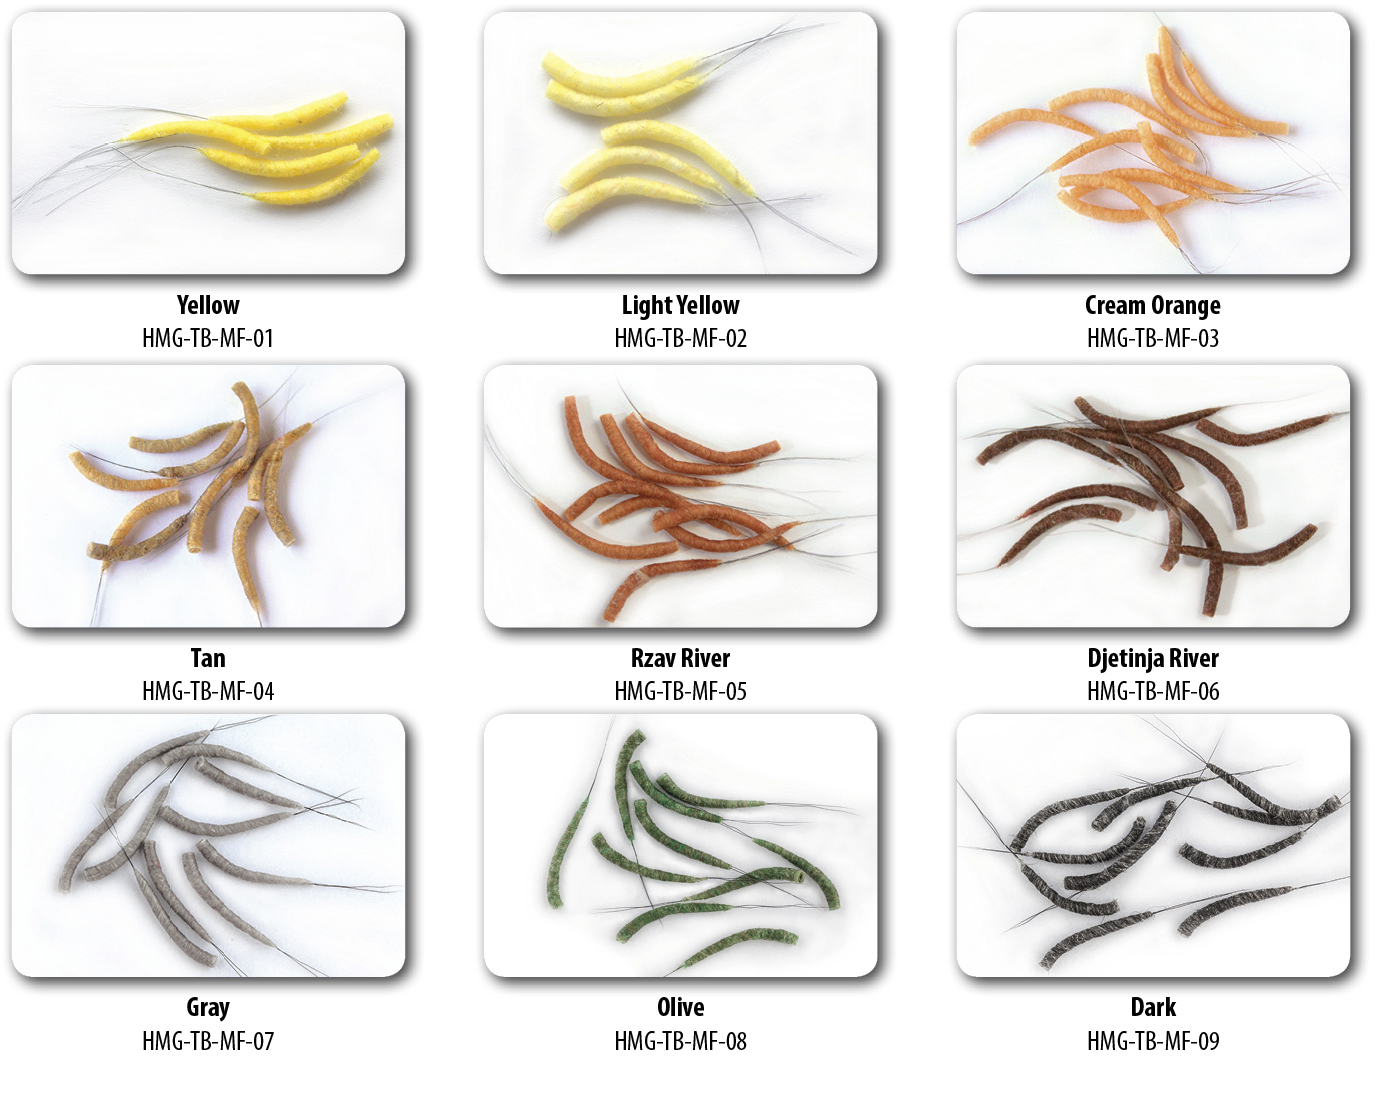 Hemmingway Tube body Mayfly Medium Size/ 10 Pieces Light yellow